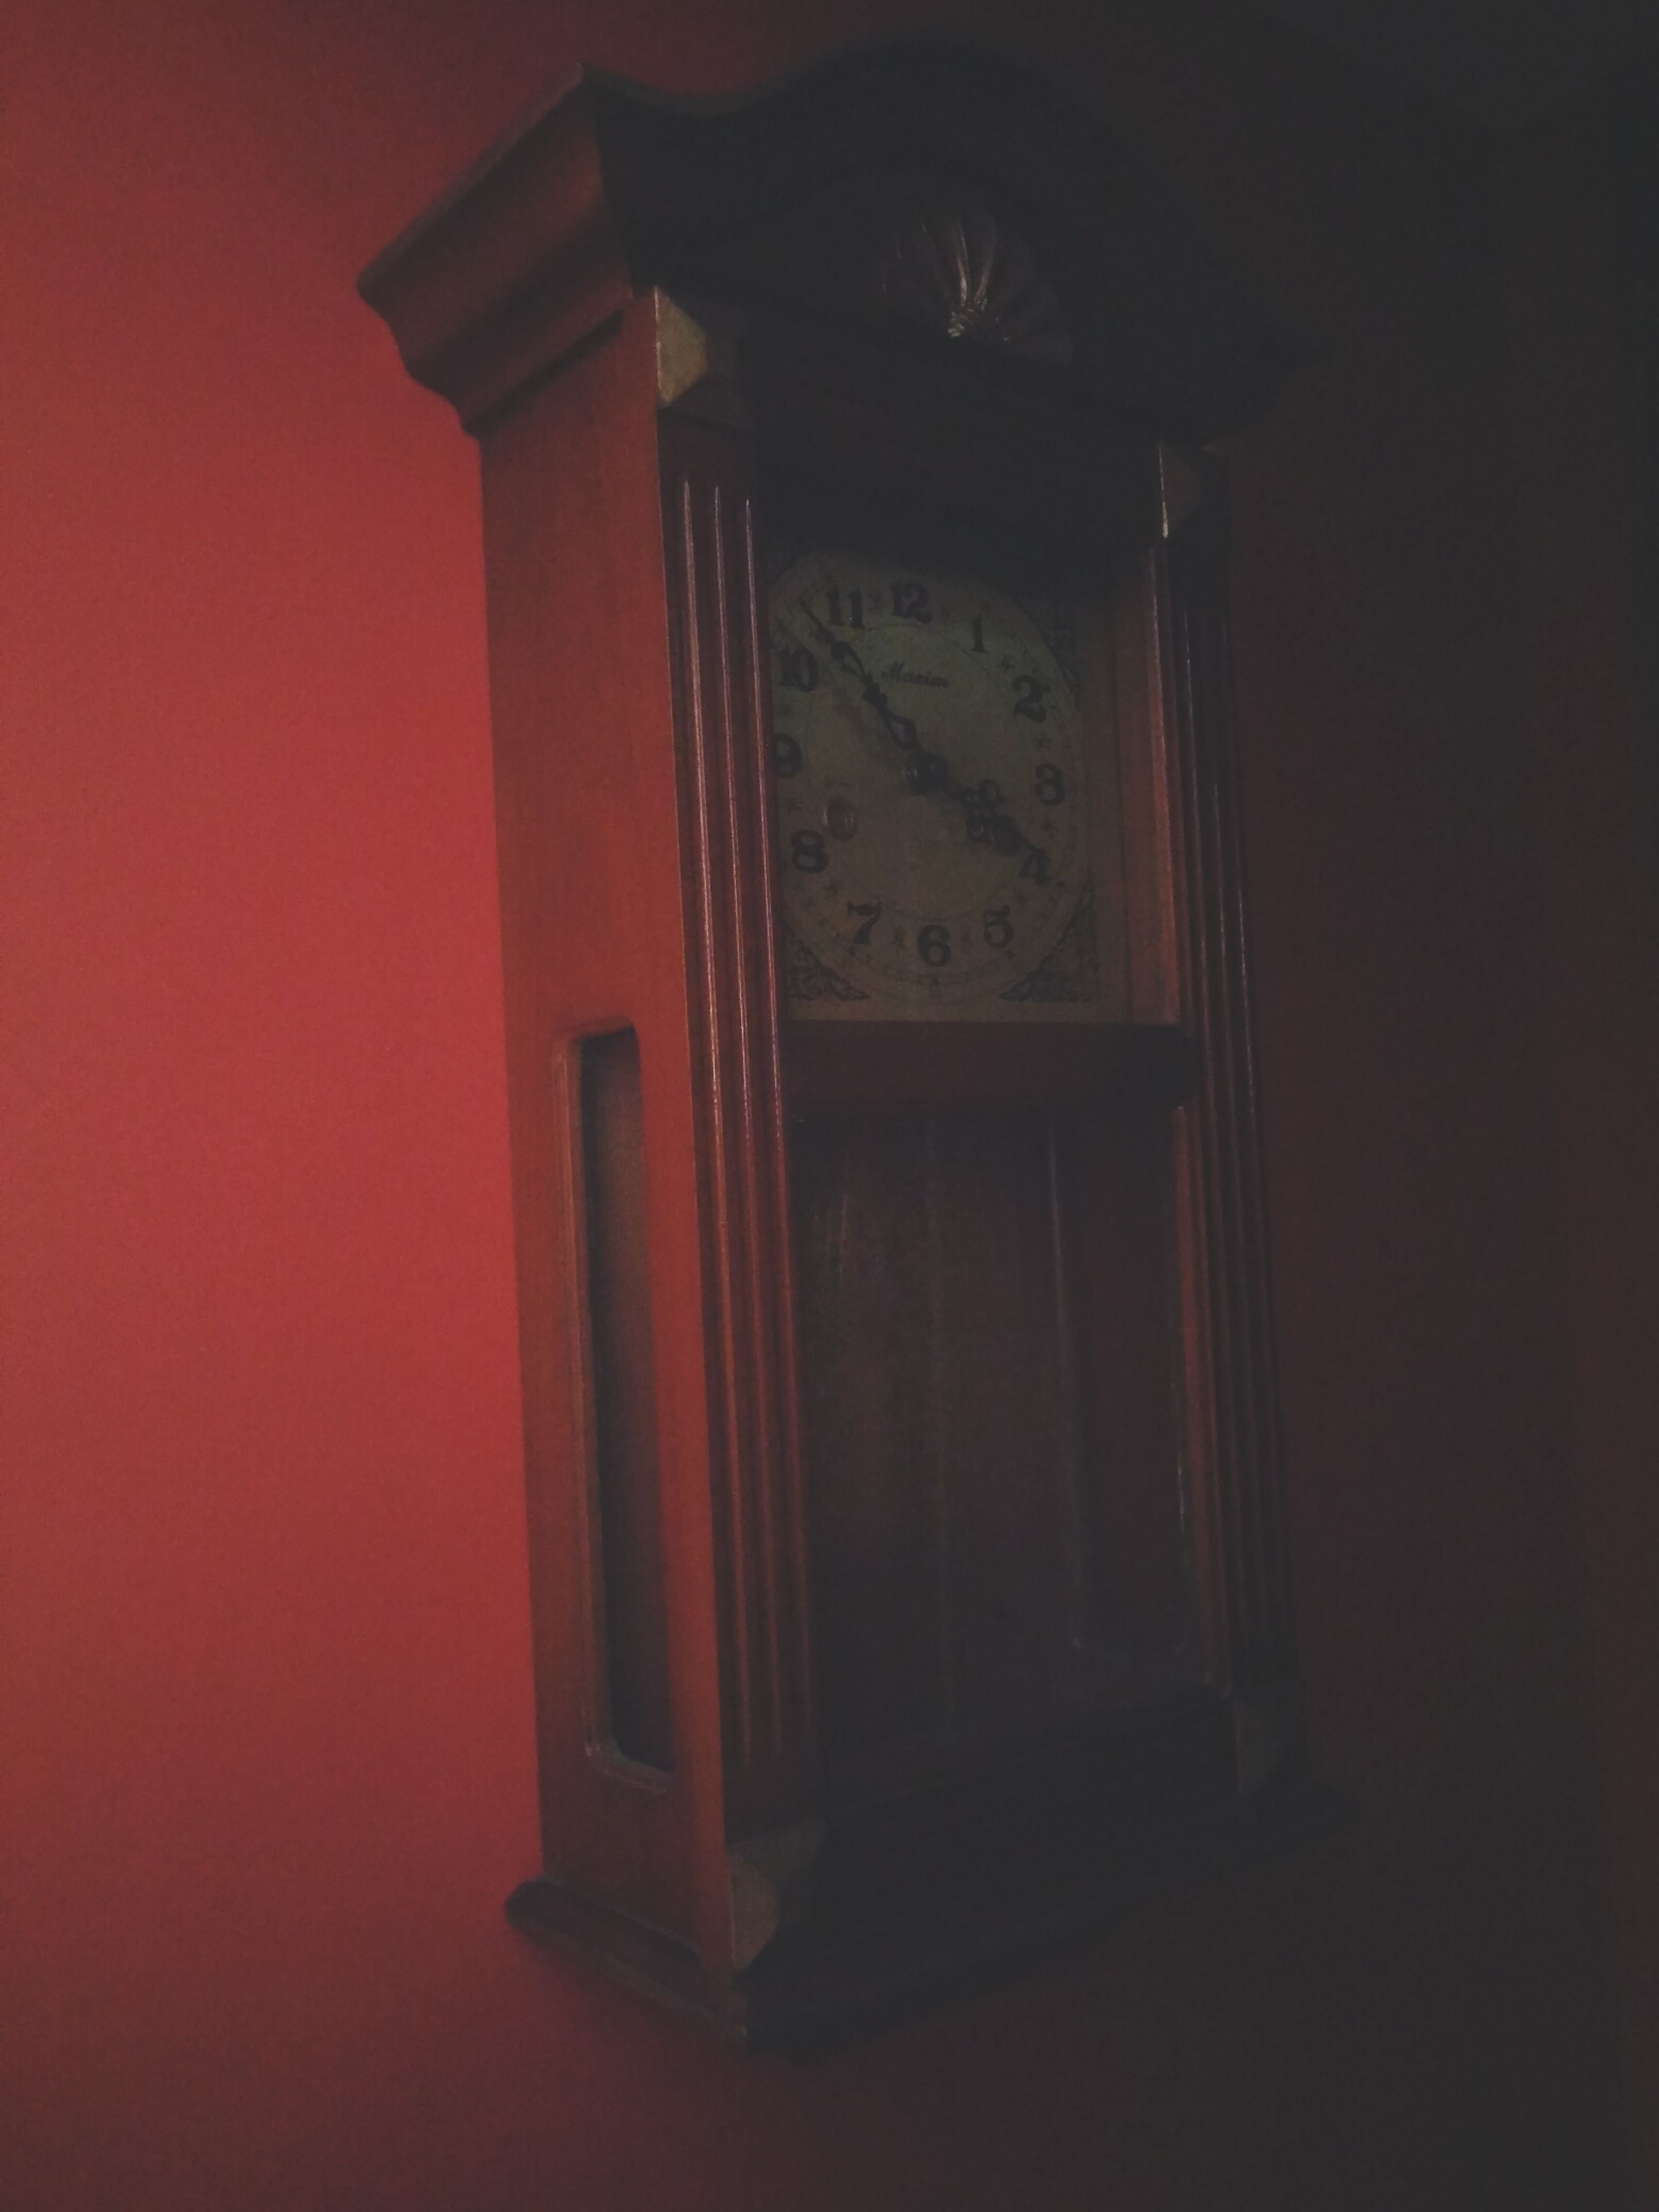 architecture, built structure, indoors, door, red, window, house, closed, building exterior, low angle view, wood - material, no people, illuminated, entrance, wall - building feature, lighting equipment, home interior, open, copy space, wall